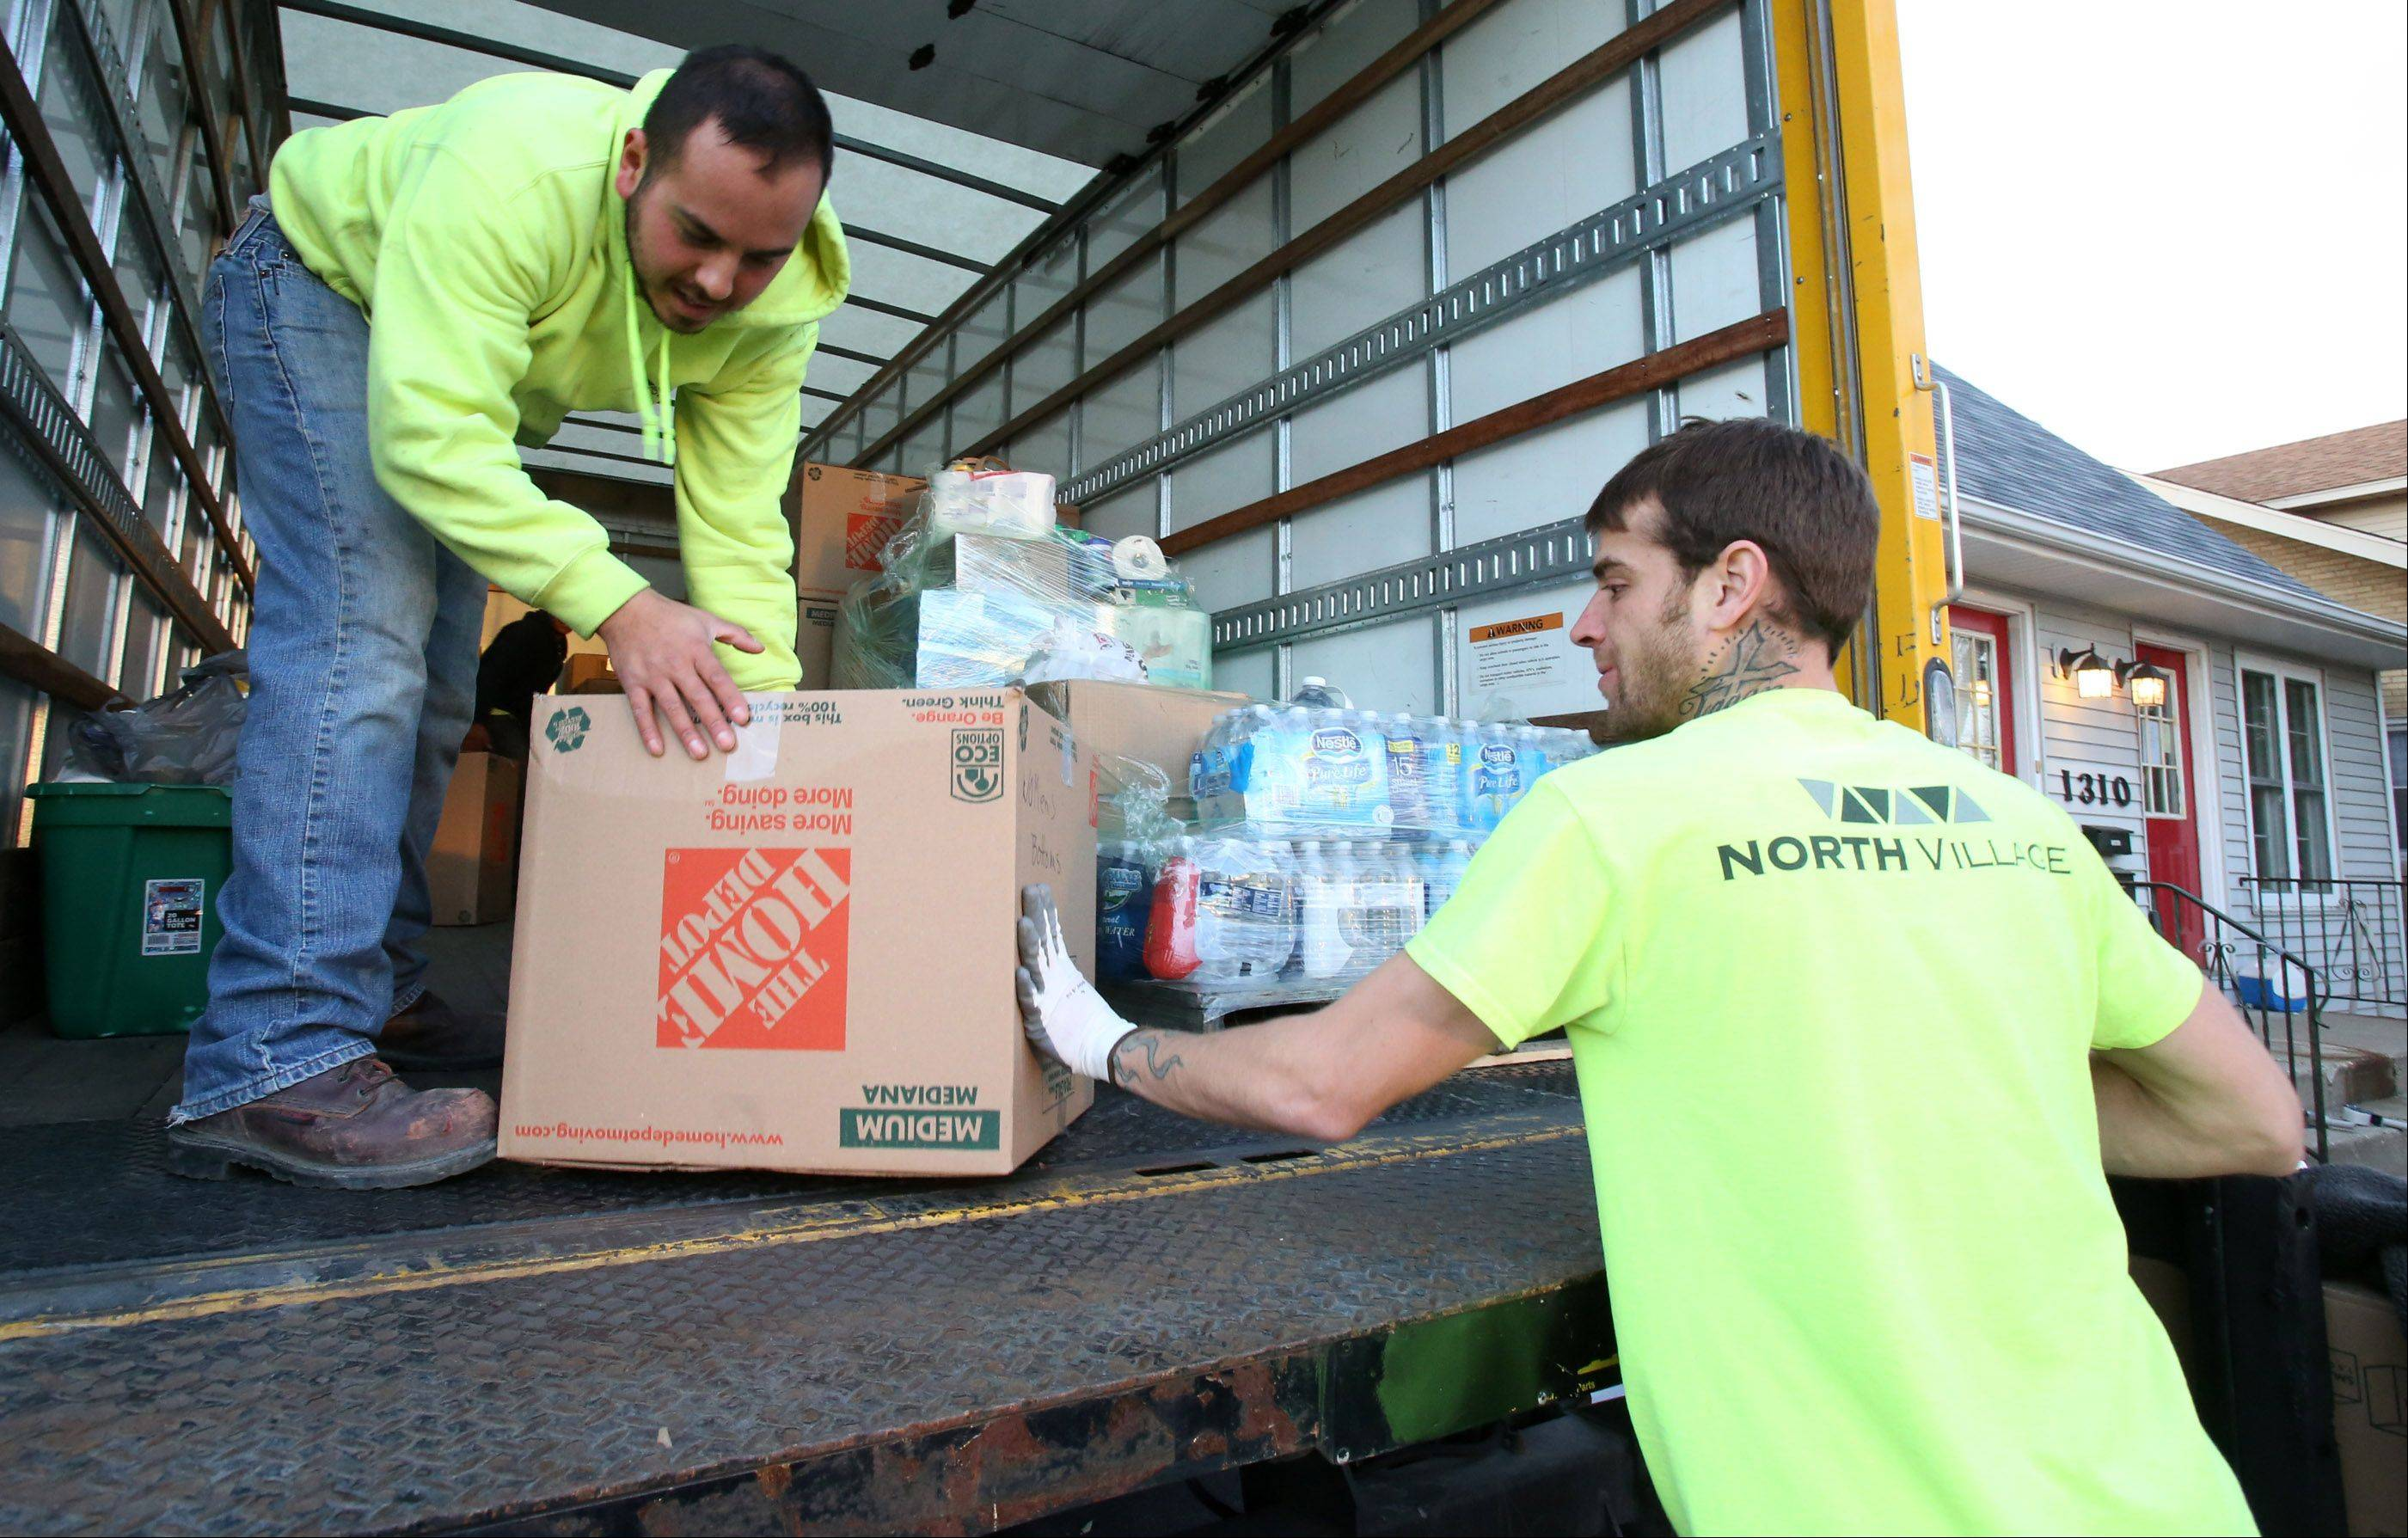 Matt Nelson, project manager at North Village Group slides a box filled with winter clothing to Jose Cabral in a truck on Friday at the Des Plaines-based construction supply firm, destined for tornado-ravaged Washington on Saturday.